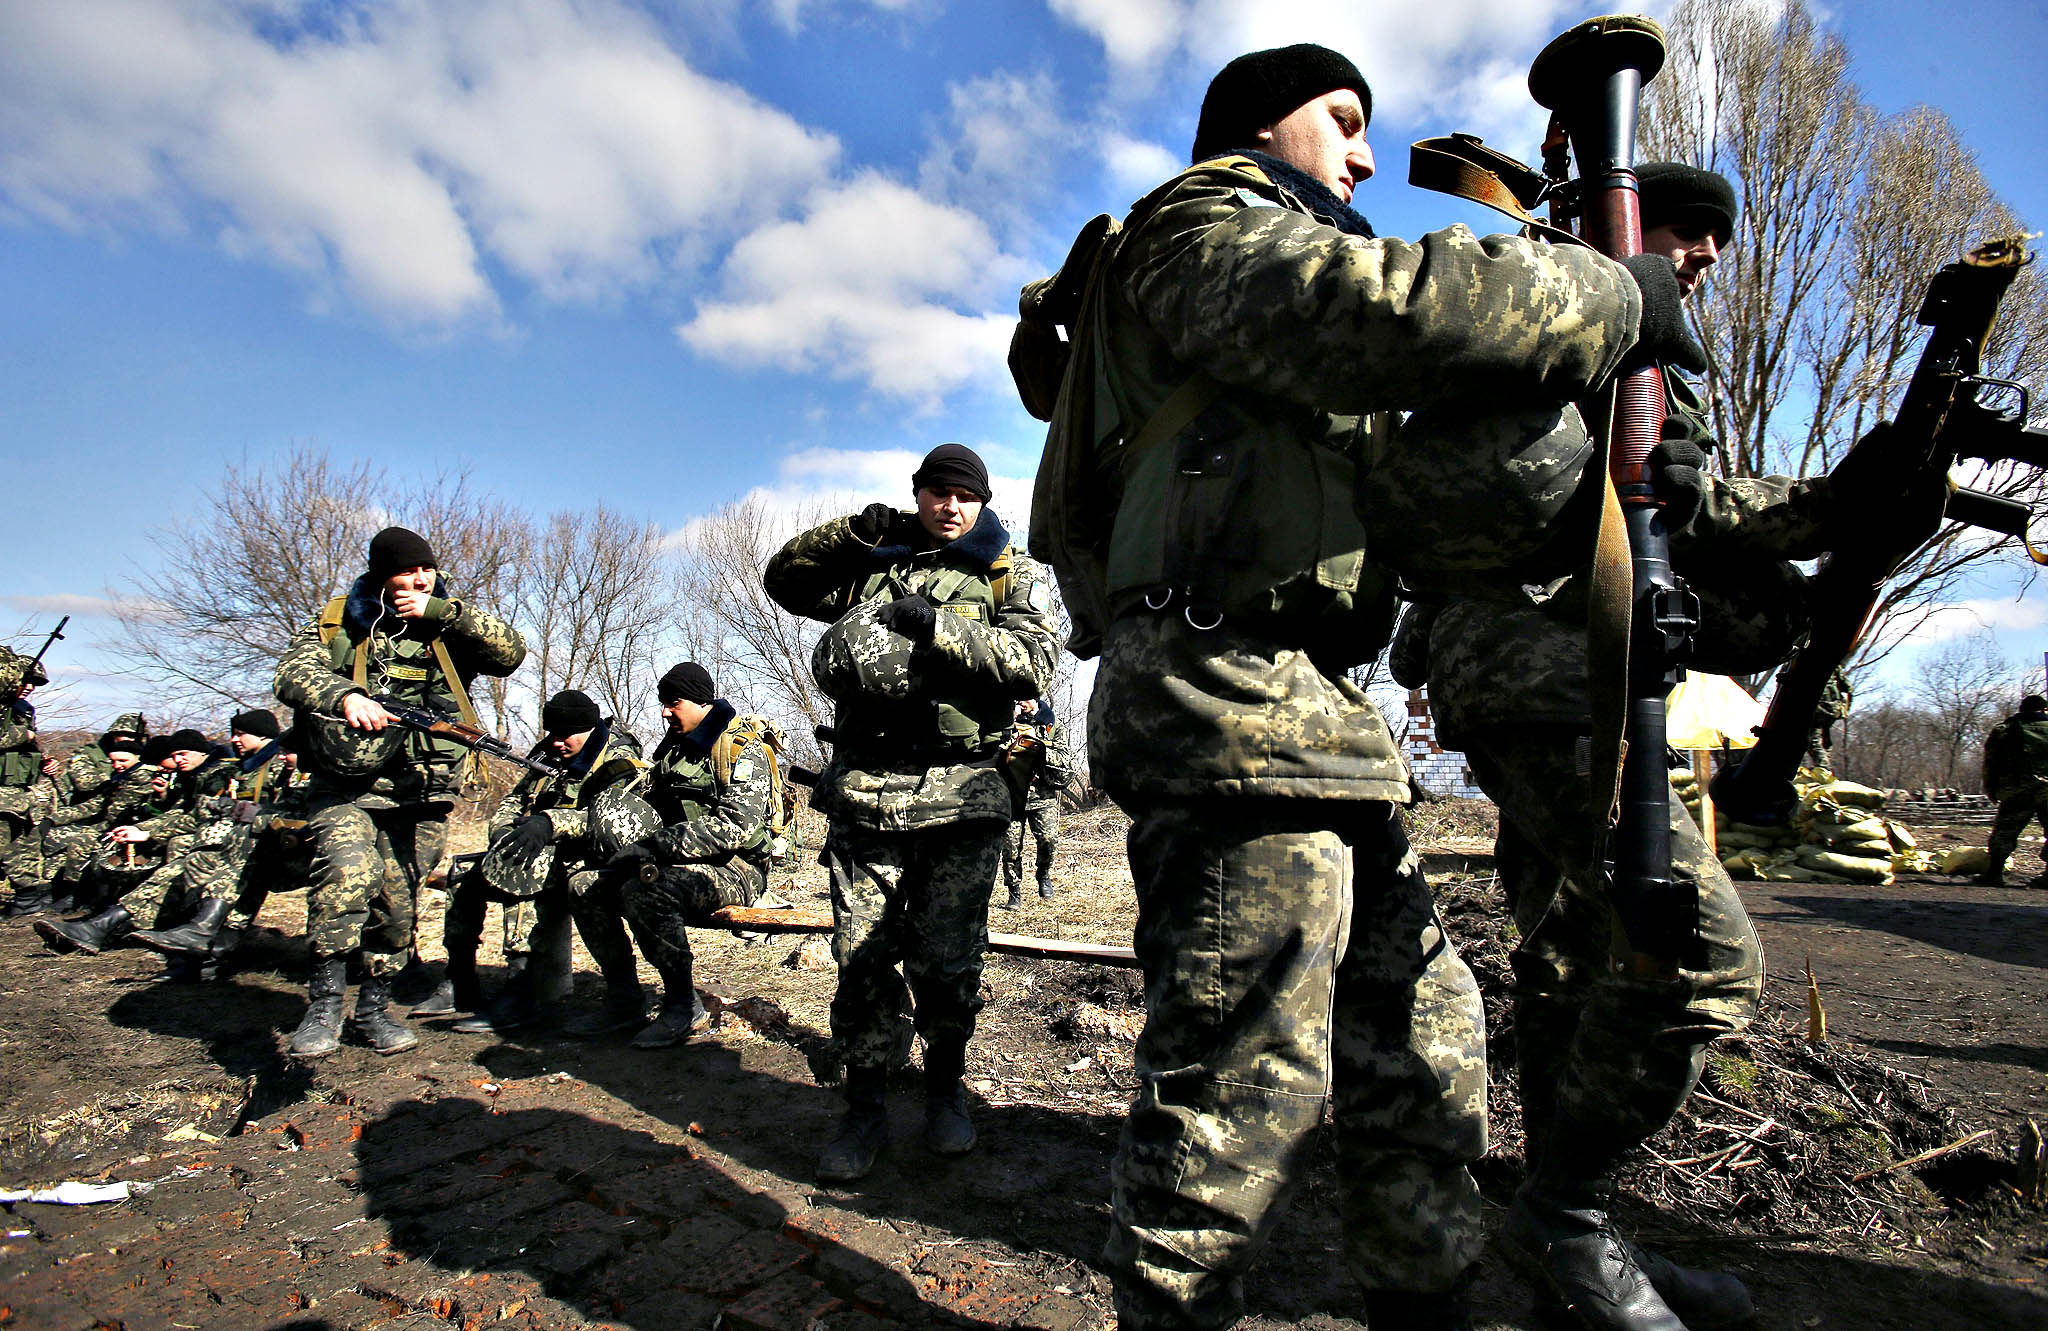 Ukrainian border guards prepare for a training session at a military camp in the village of Alekseyevka on the Ukrainian-Russian border, eastern Ukraine, Friday, March 21, 2014. Russian President Vladimir Putin signed bills on Friday making Crimea part of Russia, completing the annexation from Ukraine.